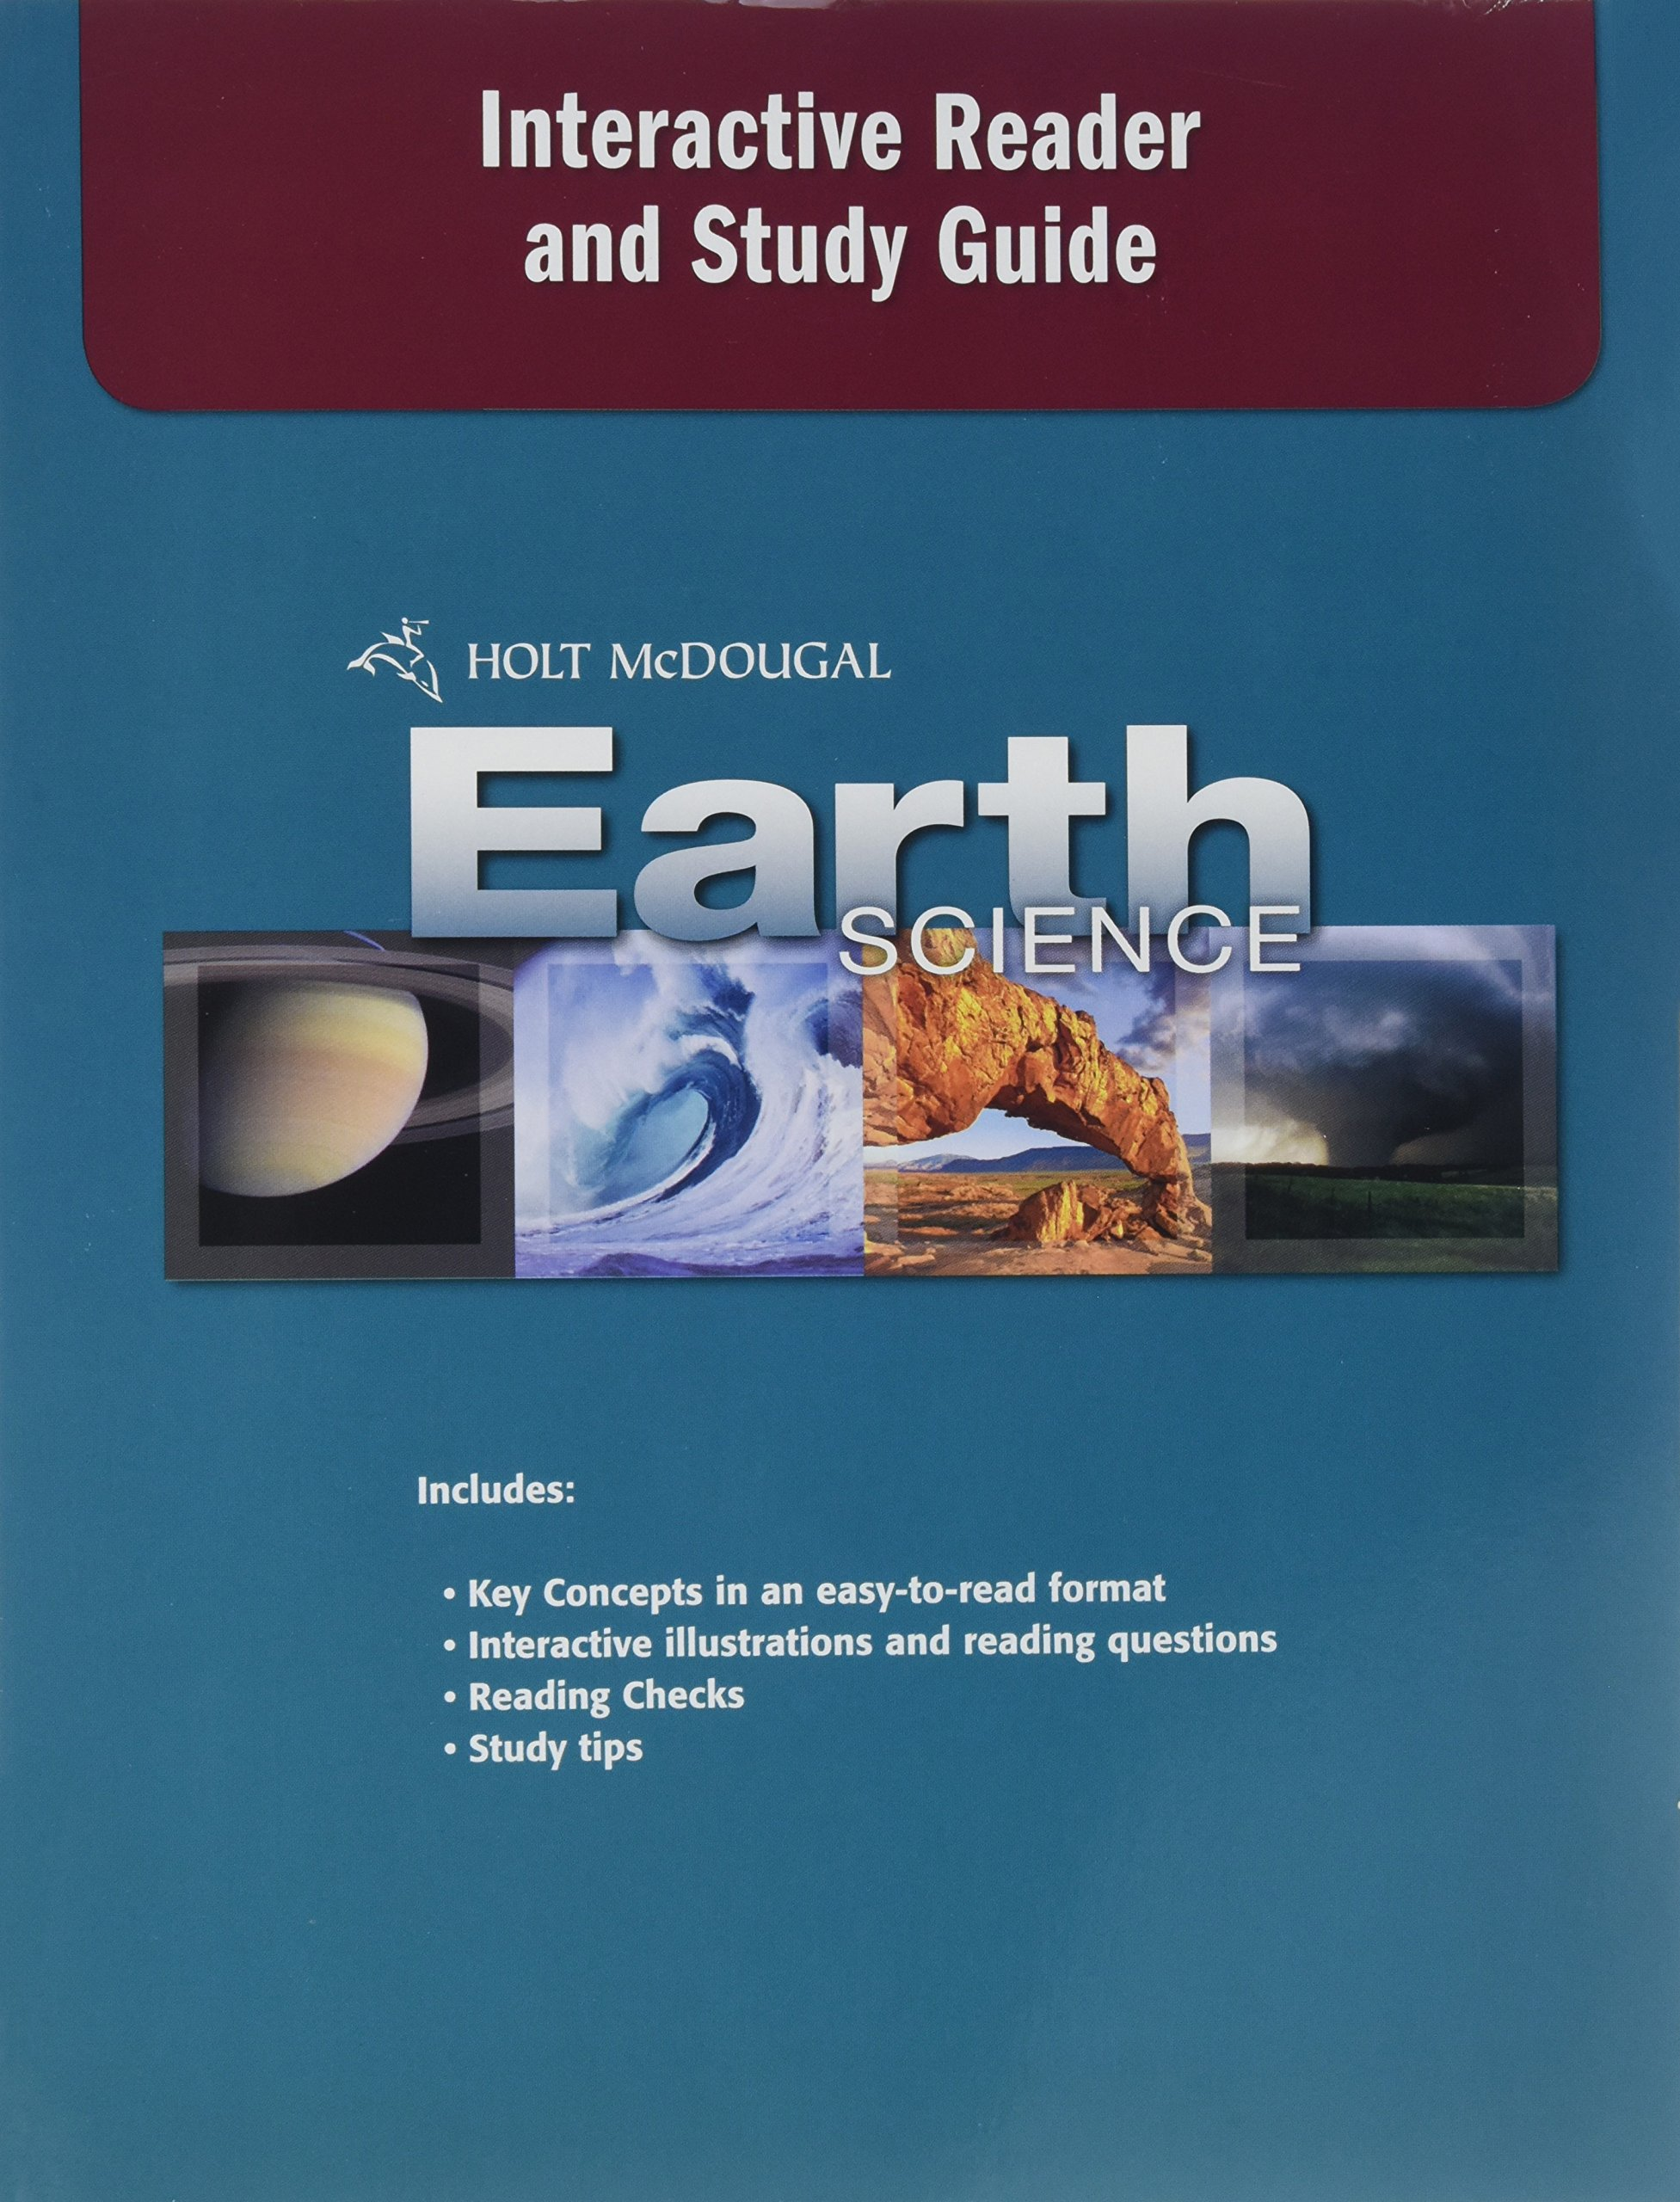 Holt McDougal Earth Science: Interactive Reader and Study Guide: HOLT  MCDOUGAL: 9780554033419: Amazon.com: Books